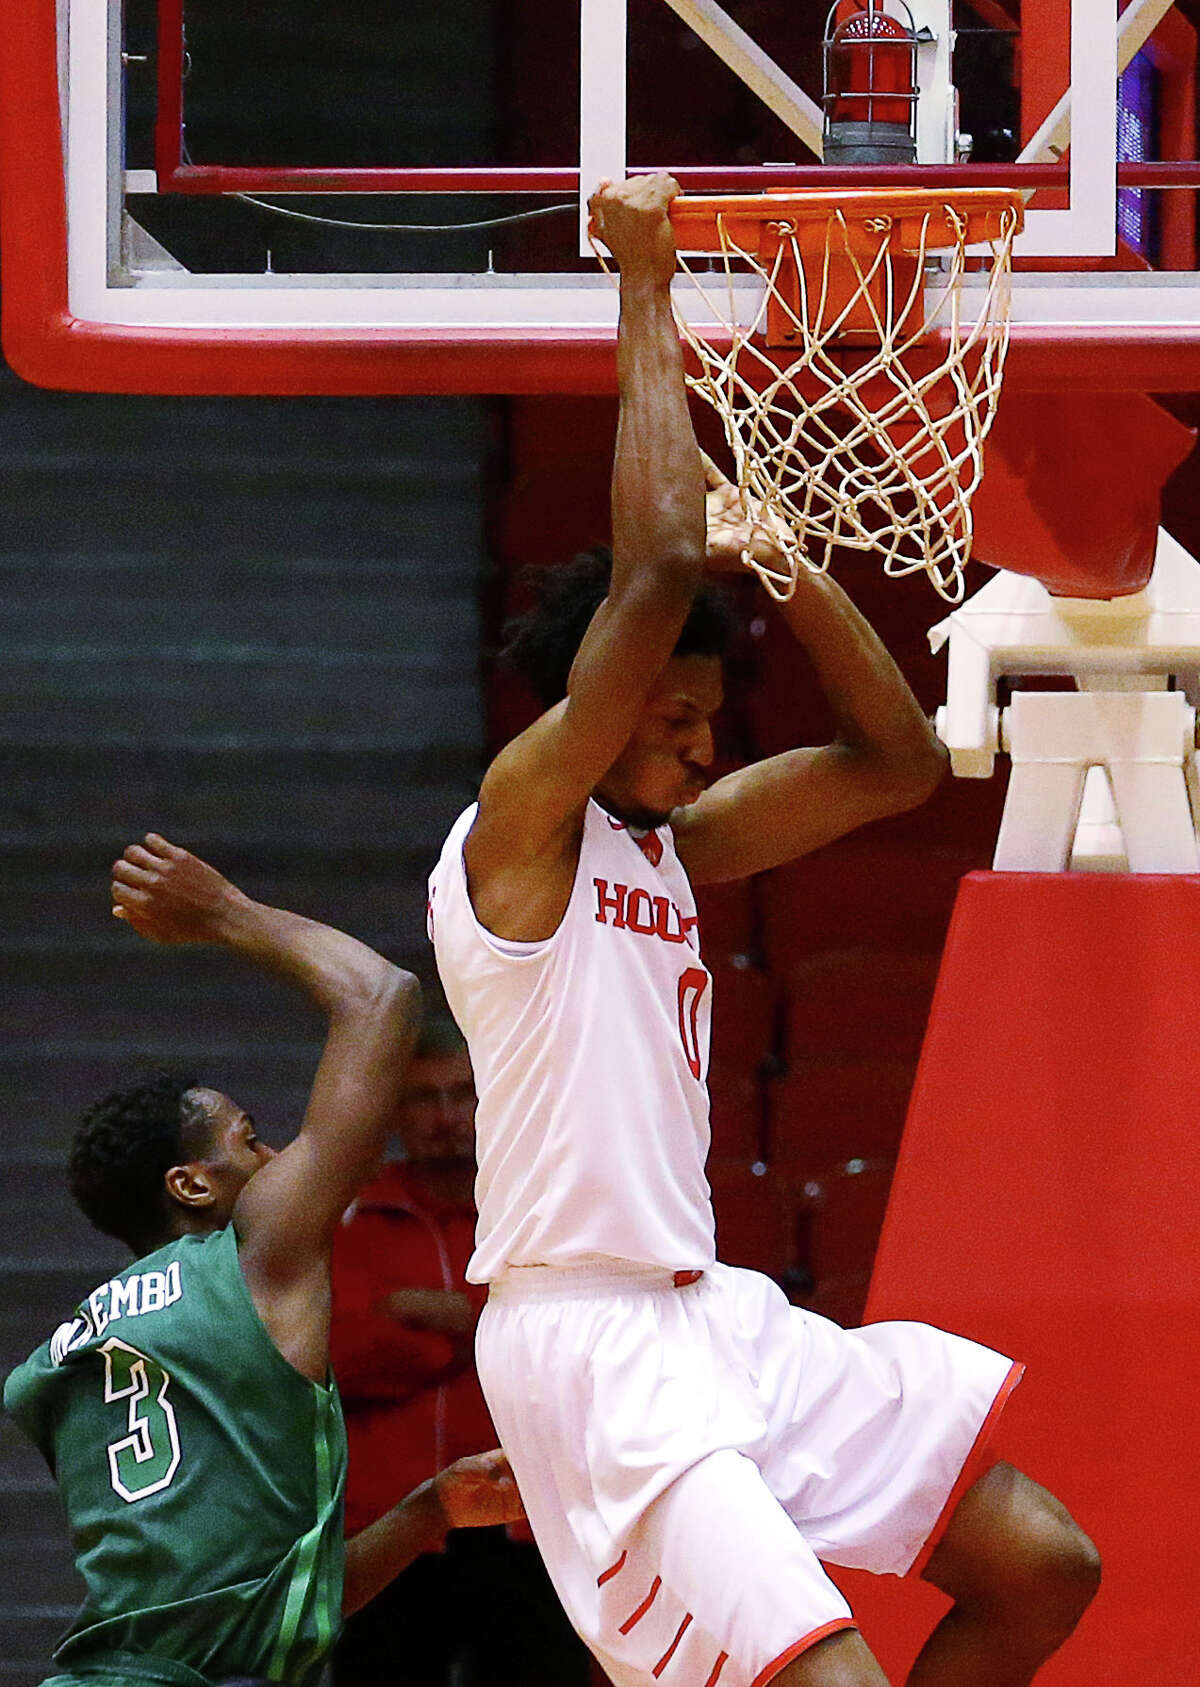 Houston Cougars forward Danrad Knowles (0) dunks the ball while Tulane Green Wave guard Ray Ona Embo (3) defends during the first half of an NCAA basketball game at Hofheinz Pavillion, Tuesday, Jan. 24, 2017, in Houston.